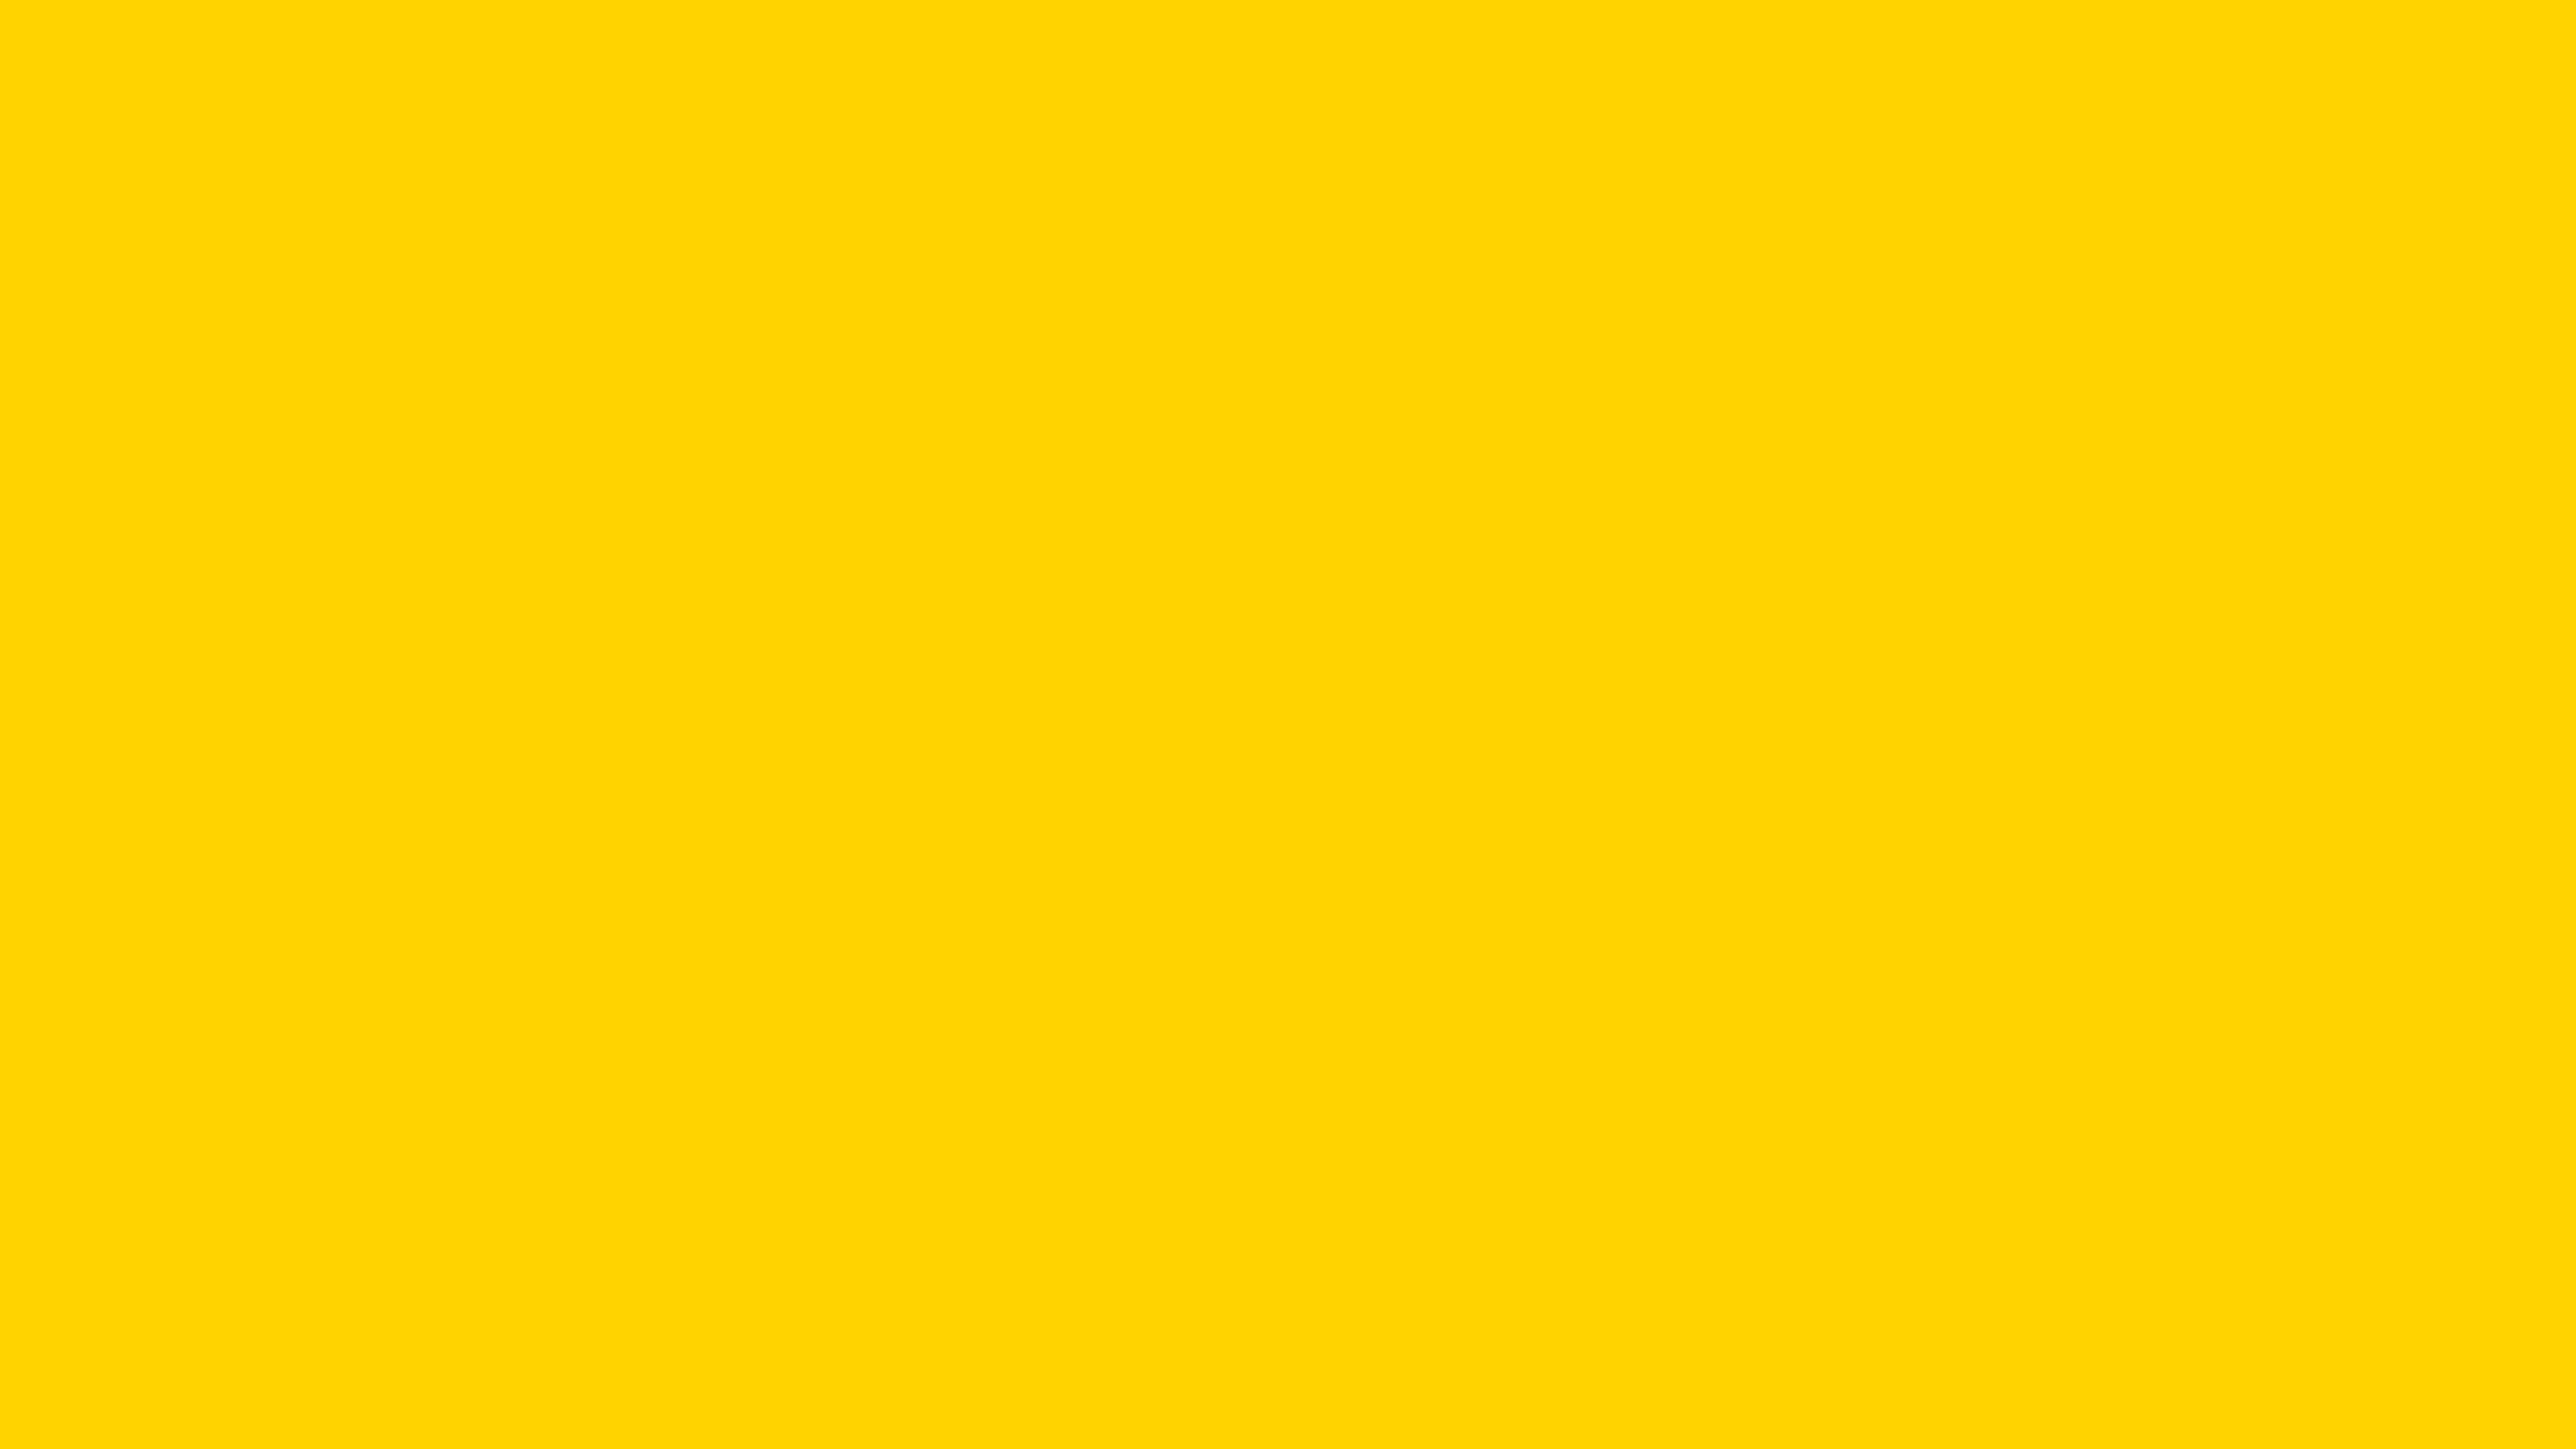 3840x2160 Yellow NCS Solid Color Background